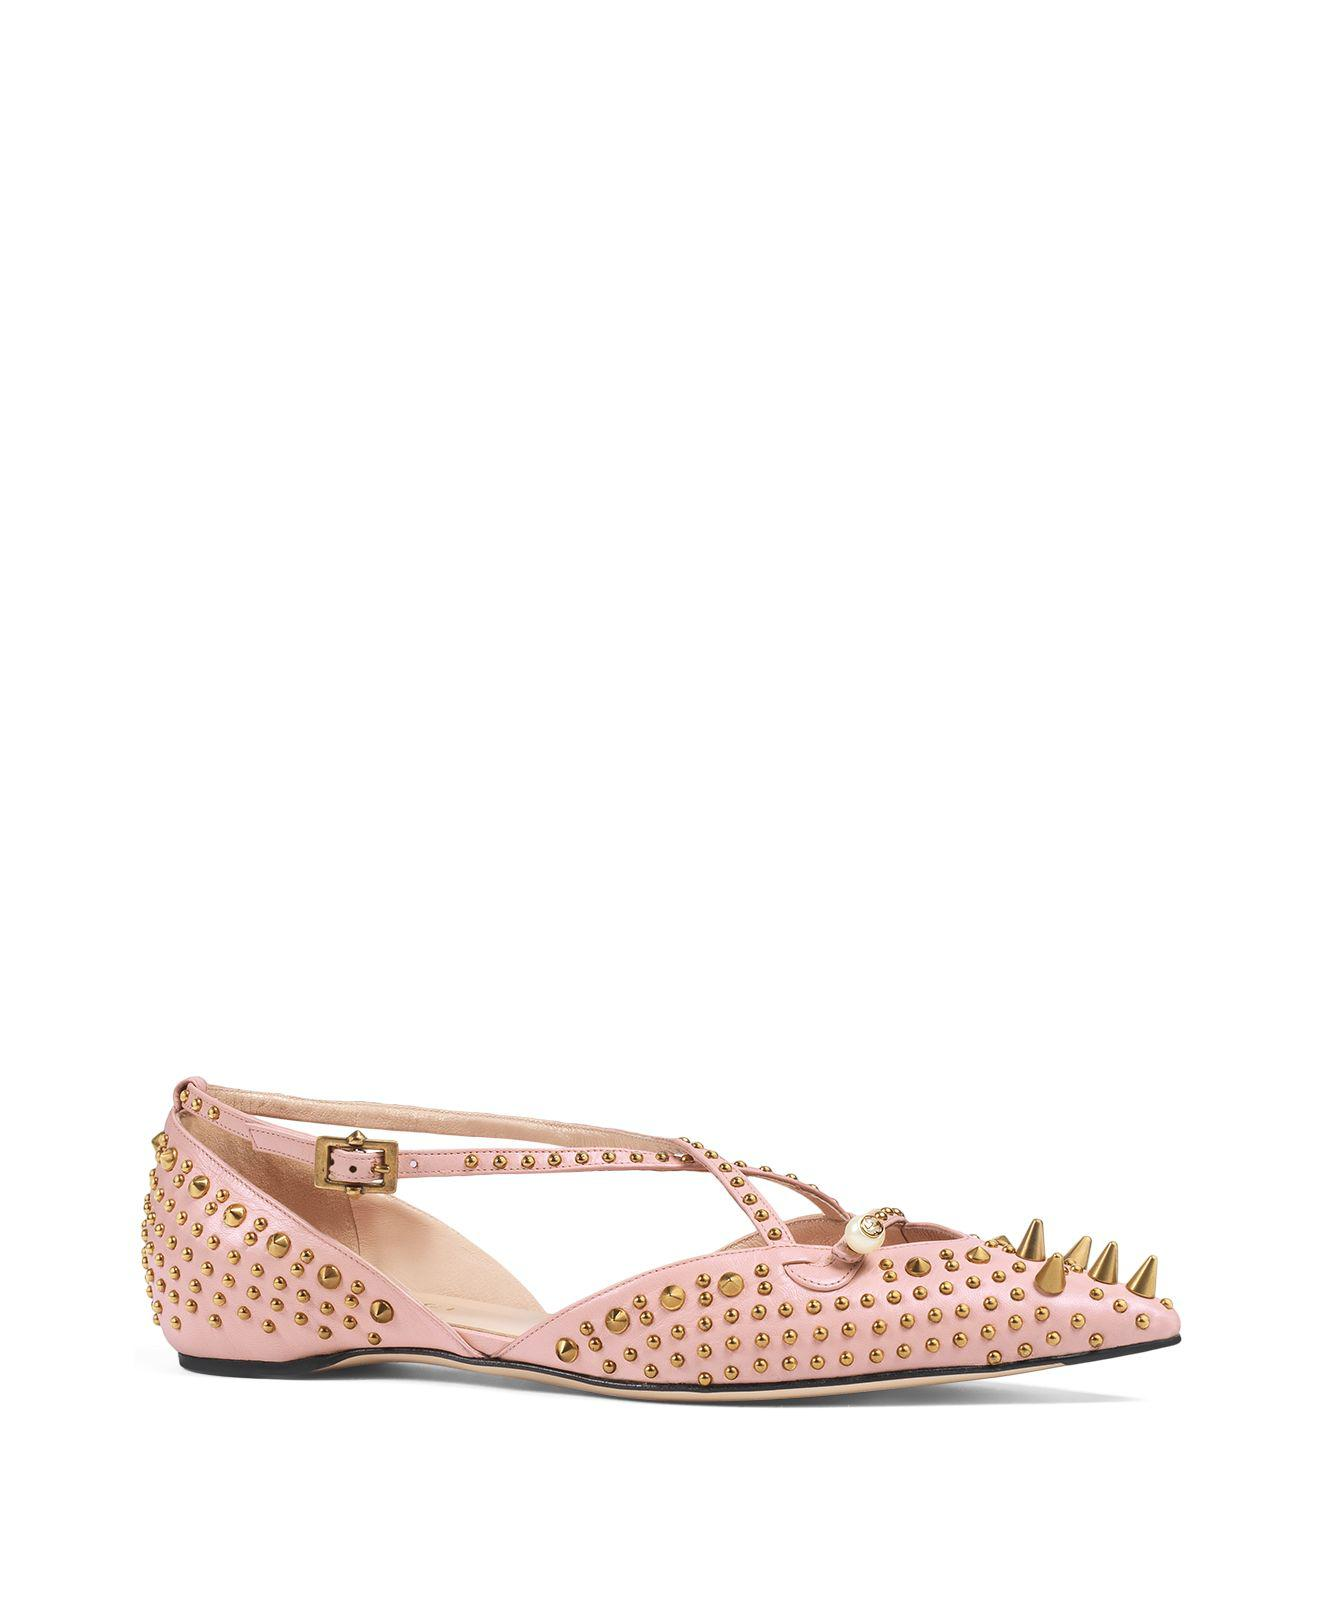 4afe00ec8093a6 Lyst - Gucci Unia Studded Pointed Toe Flats in Pink